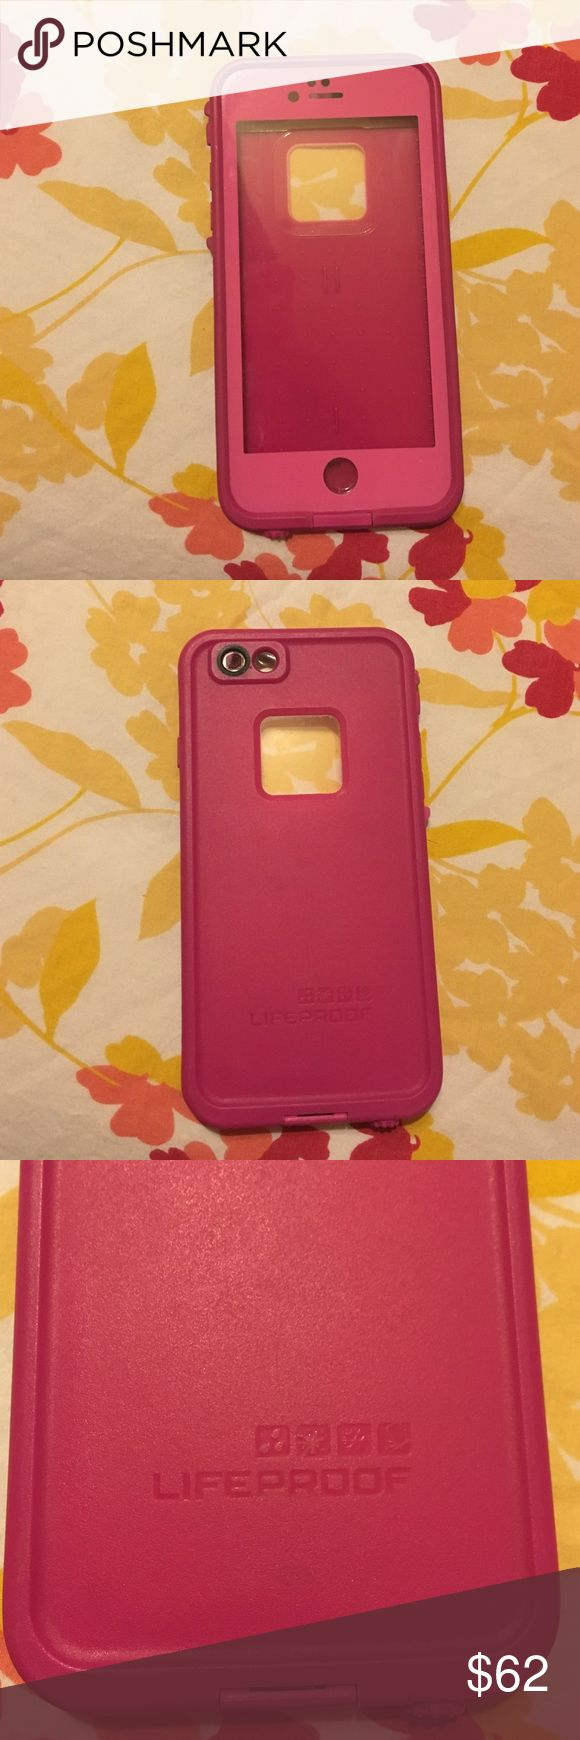 AUTHENTIC life proof case IPhone 6 Authentic life proof iPhone 6 case. Hot pink. Was used for approximately one month before I upgraded to the 6s & was no longer able to use the case. The case ONLY fits the iPhone 6. Not the 6s. Make me an offer!! LifeProof Accessories Phone Cases